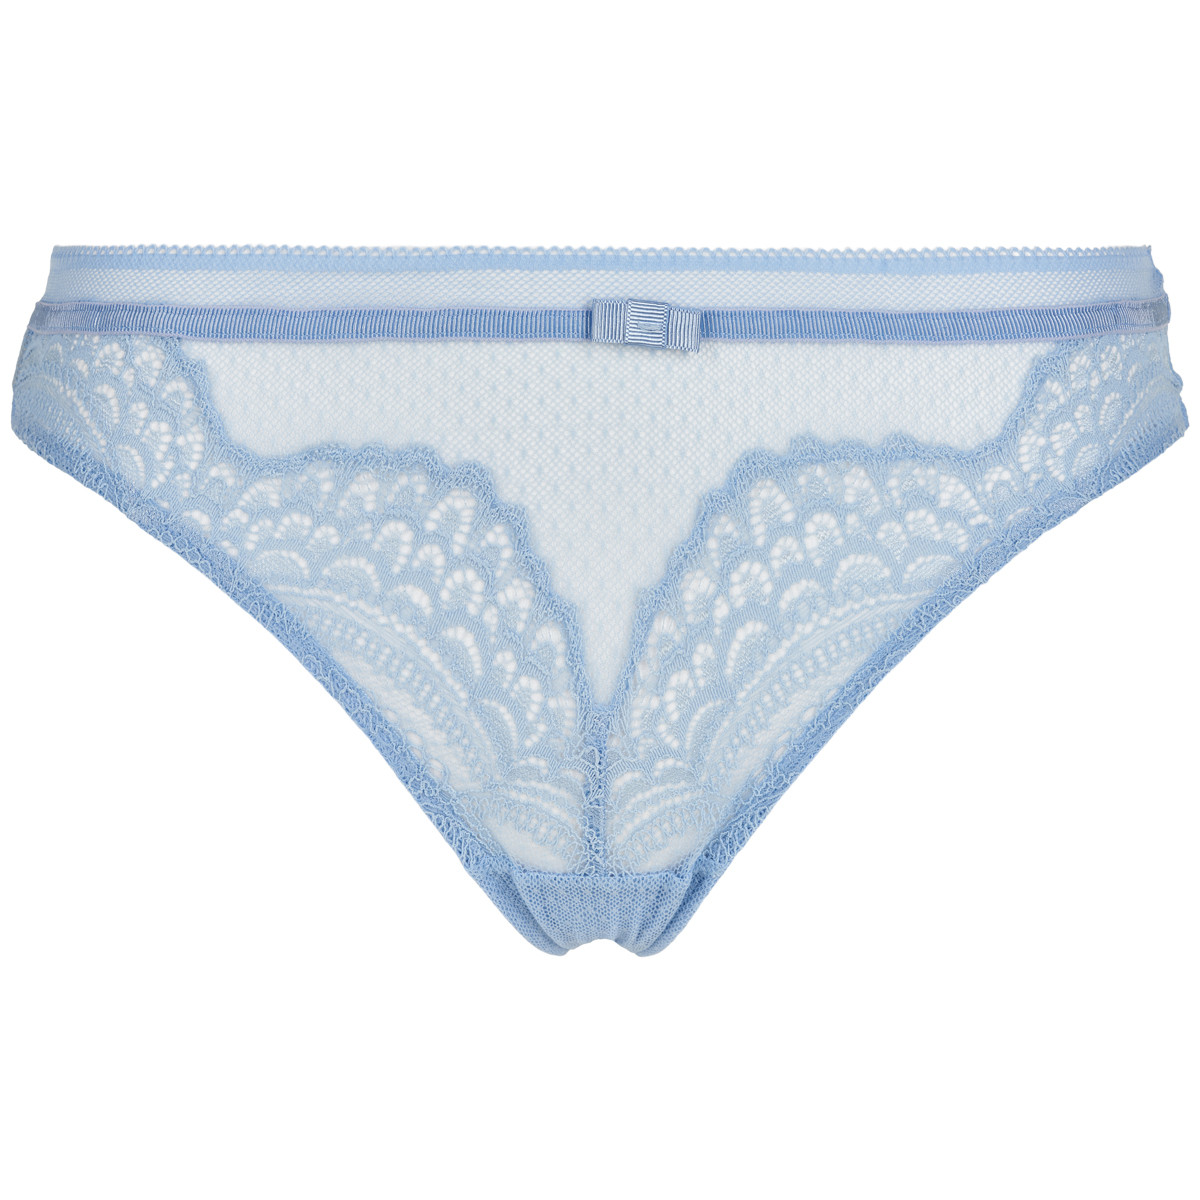 TRIUMPH BEAUTY-FULL DARLING STRING 10156818 00RE